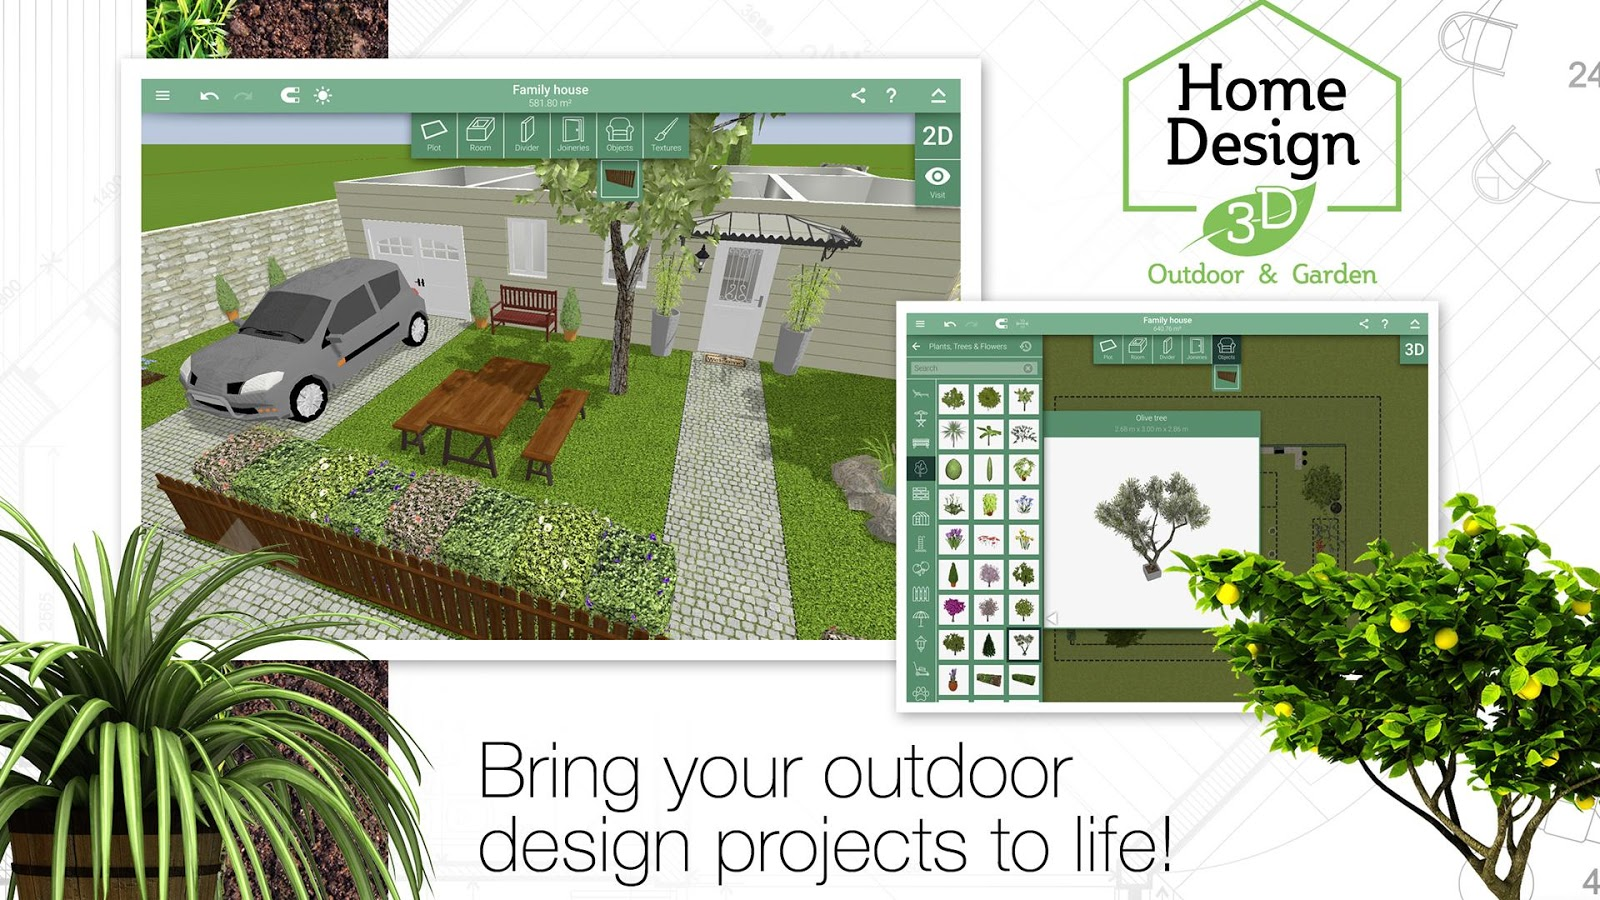 Home Design 3D Outdoor/Garden 4.0.8 APK + OBB (Data File) Download ...